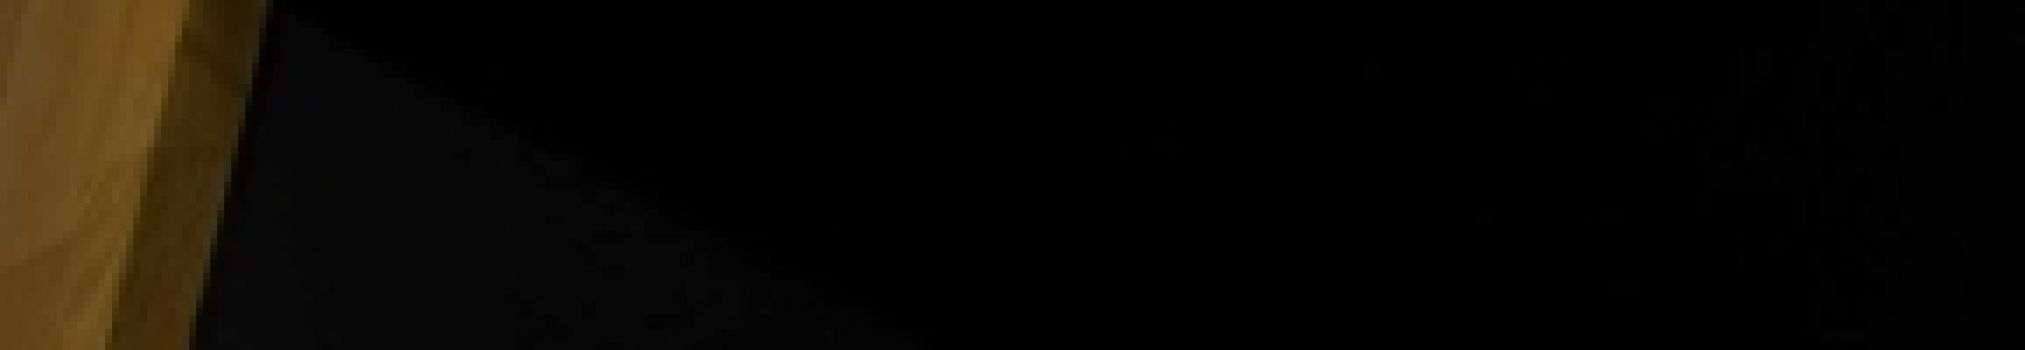 Onze geschenkverpakkingenThe range of gift sets offered by Westmalle